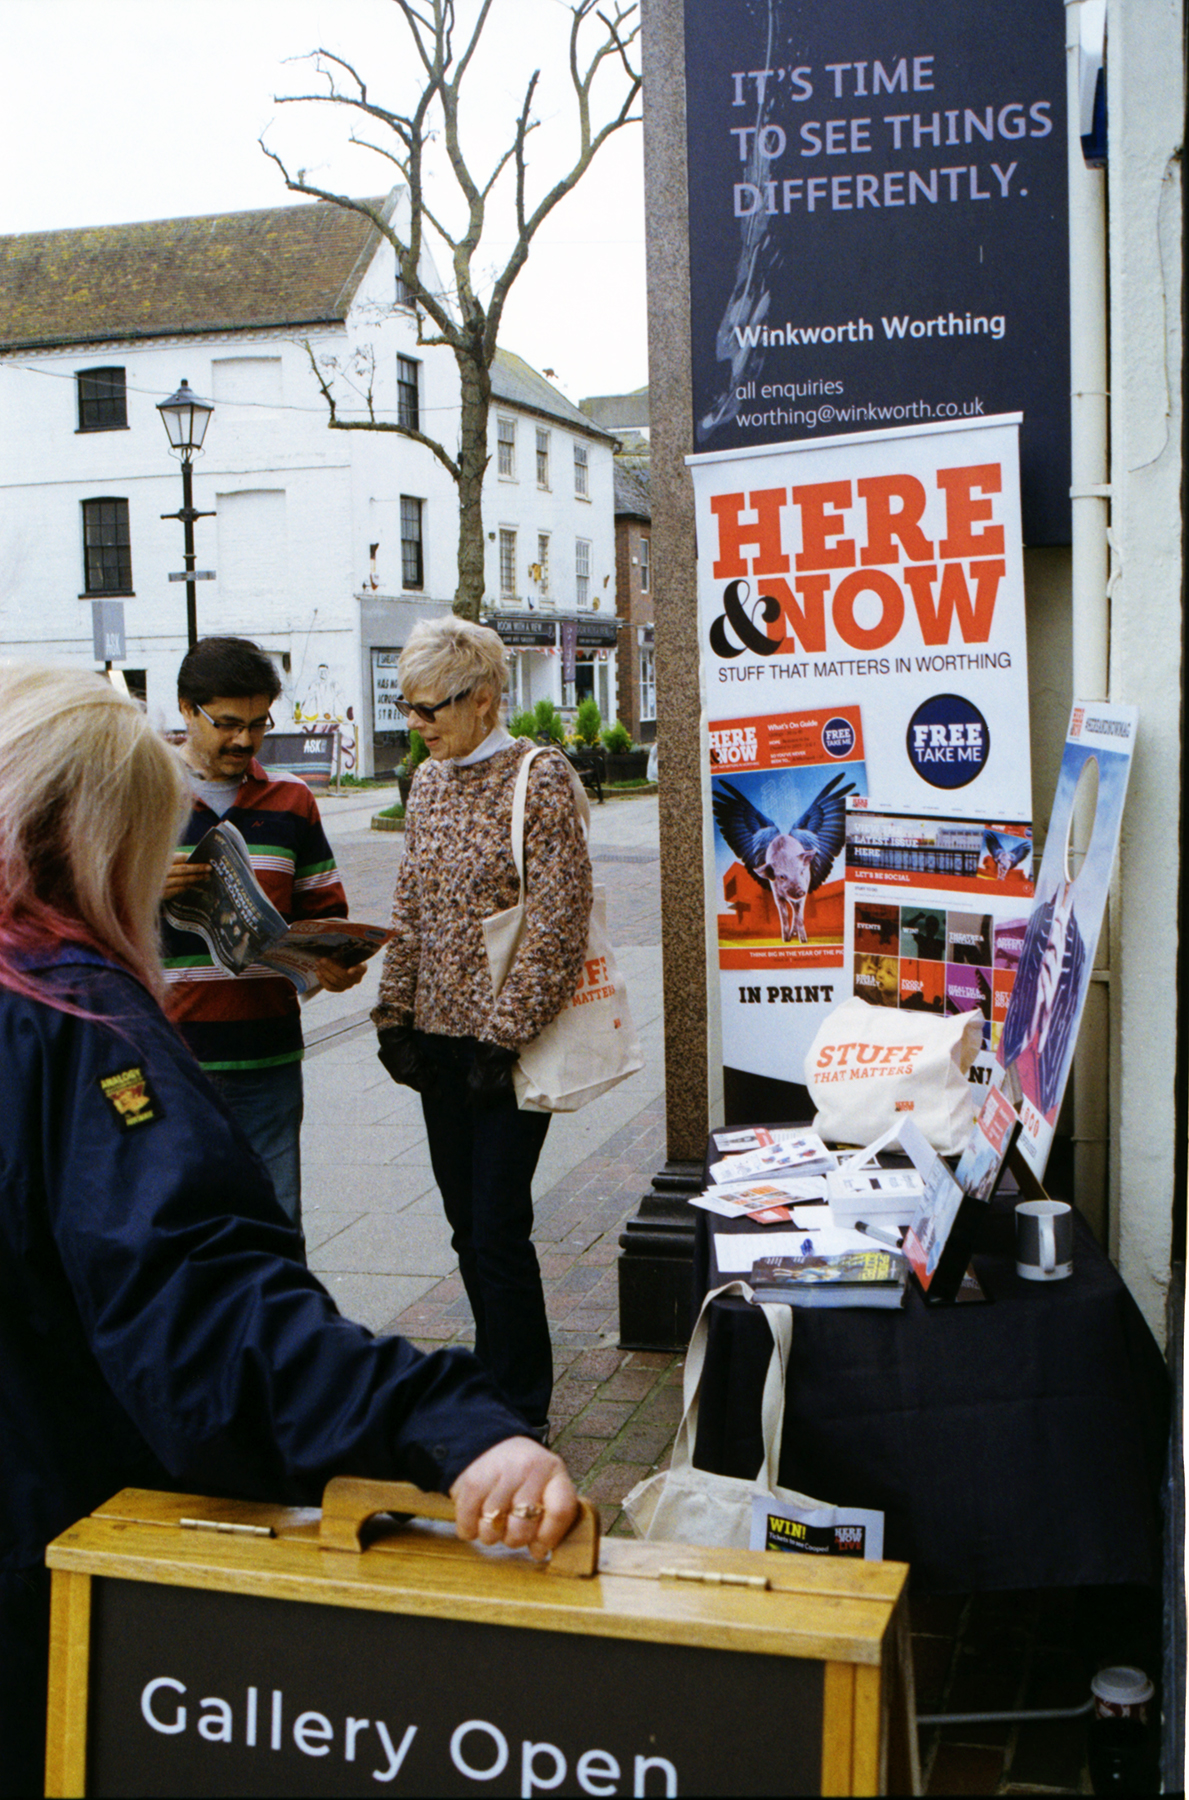 Promoting Here & Now outside Colonnade House